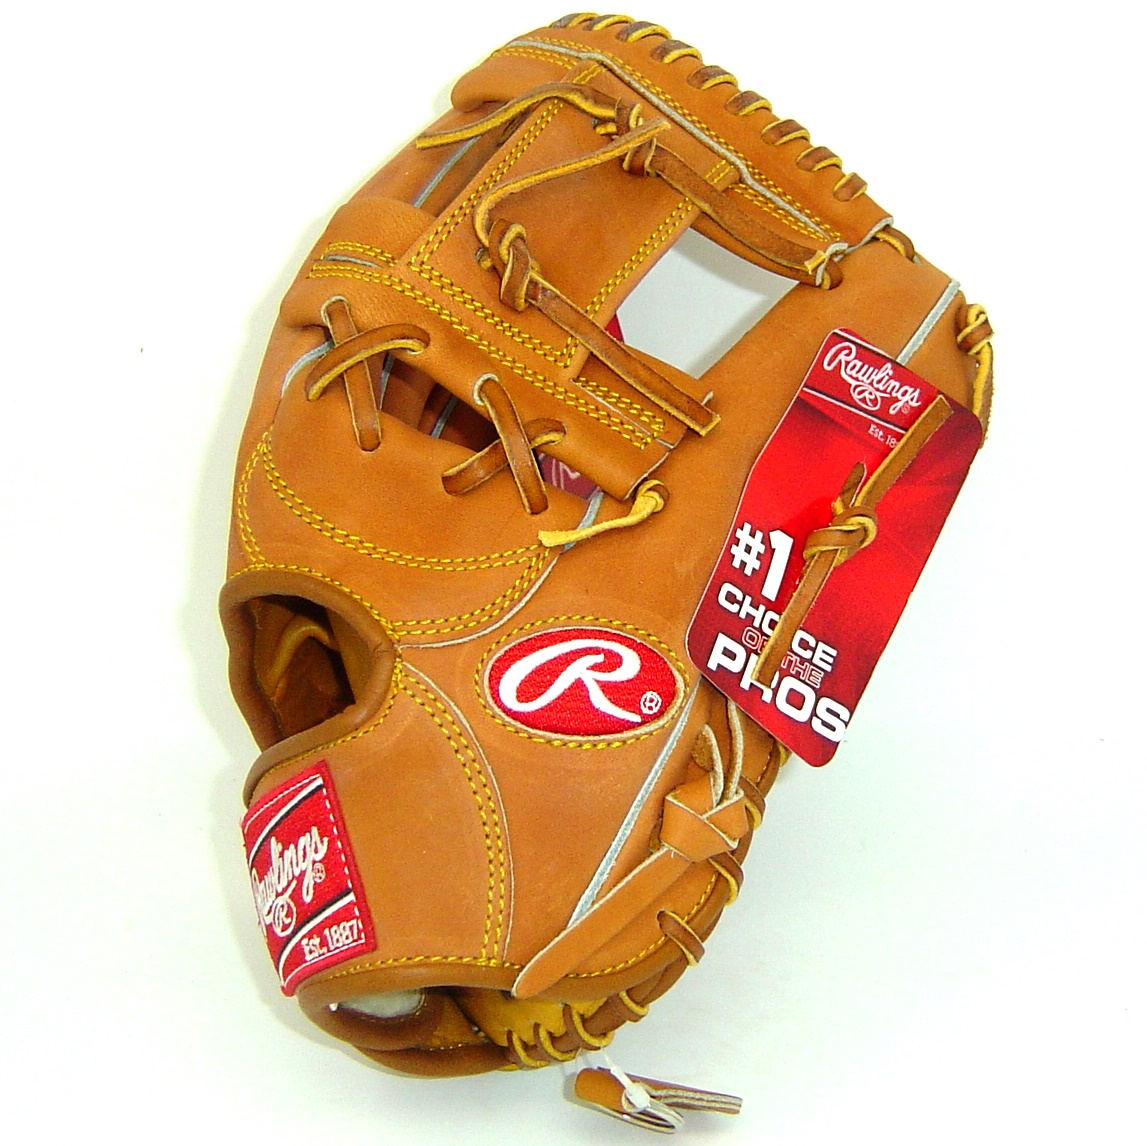 rawlings-heart-of-hide-xpg3-baseball-glove-12-inch-right-hand-throw XPG3-RightHandThrow Rawlings  <p>Rawlings Heart of Hide Brooks Robinson model remake in horween leather.</p>